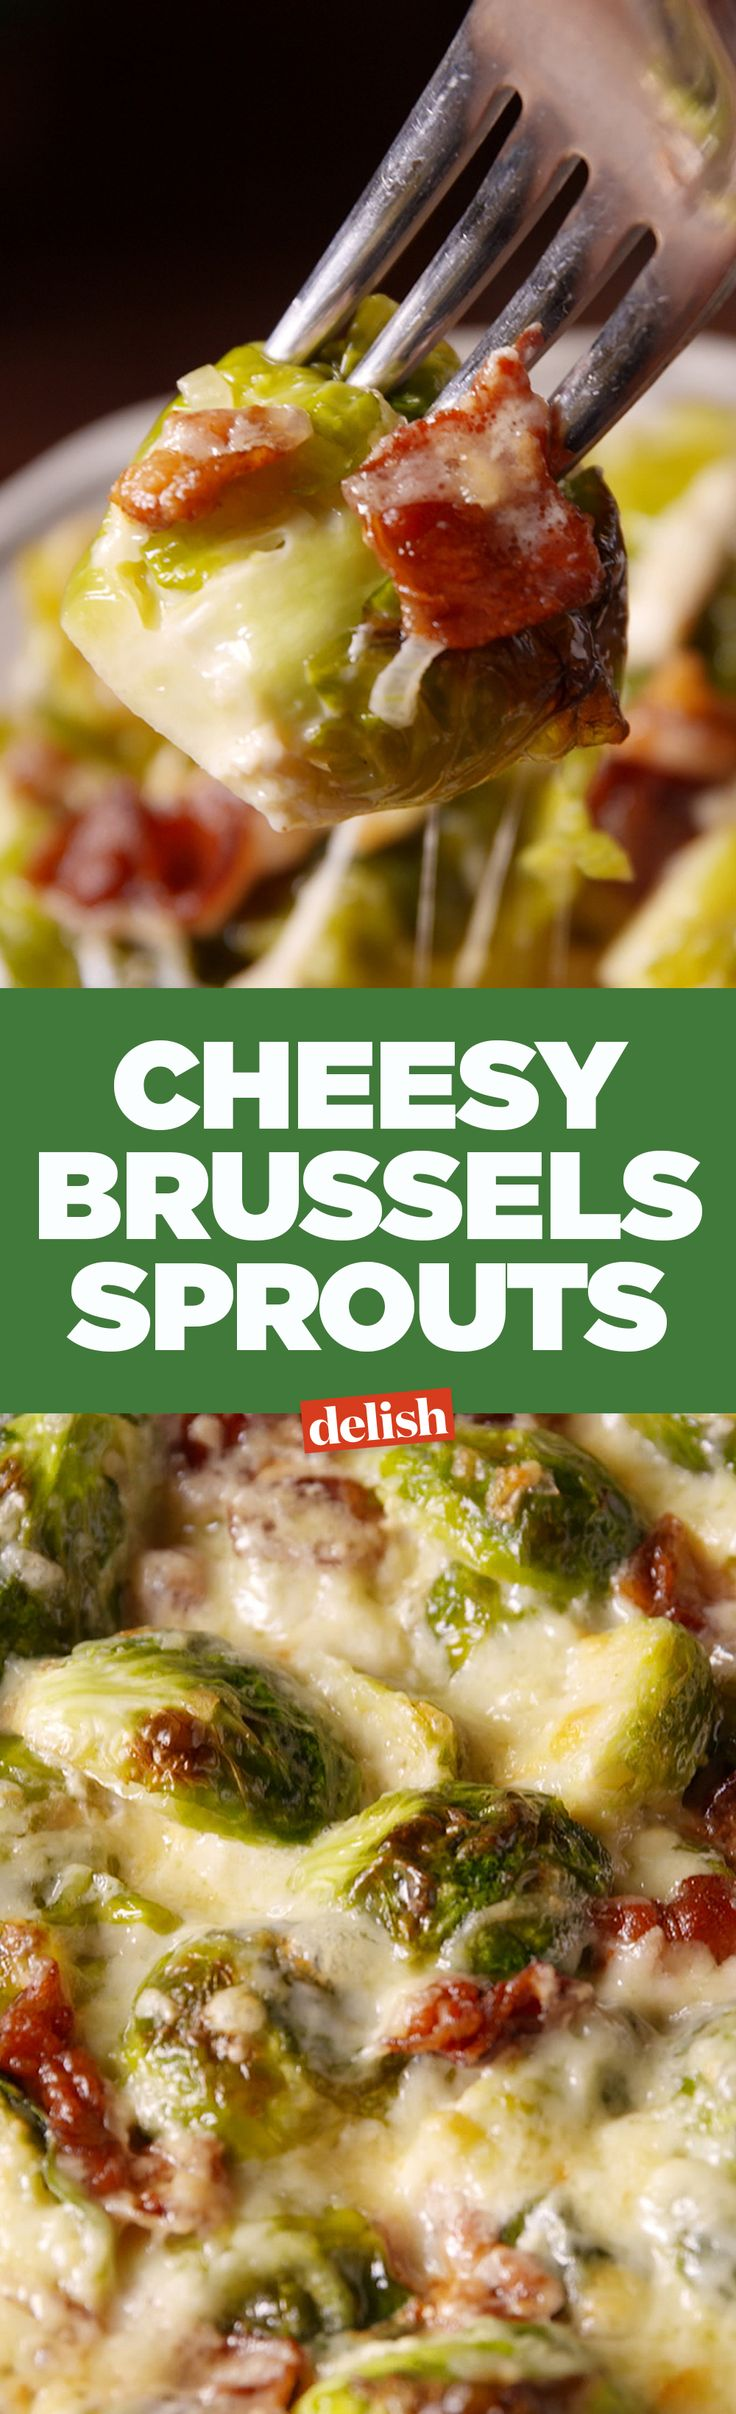 Cheesy brussels sprouts are the best brussels side for Thanksgiving. Get the recipe on Delish.com.